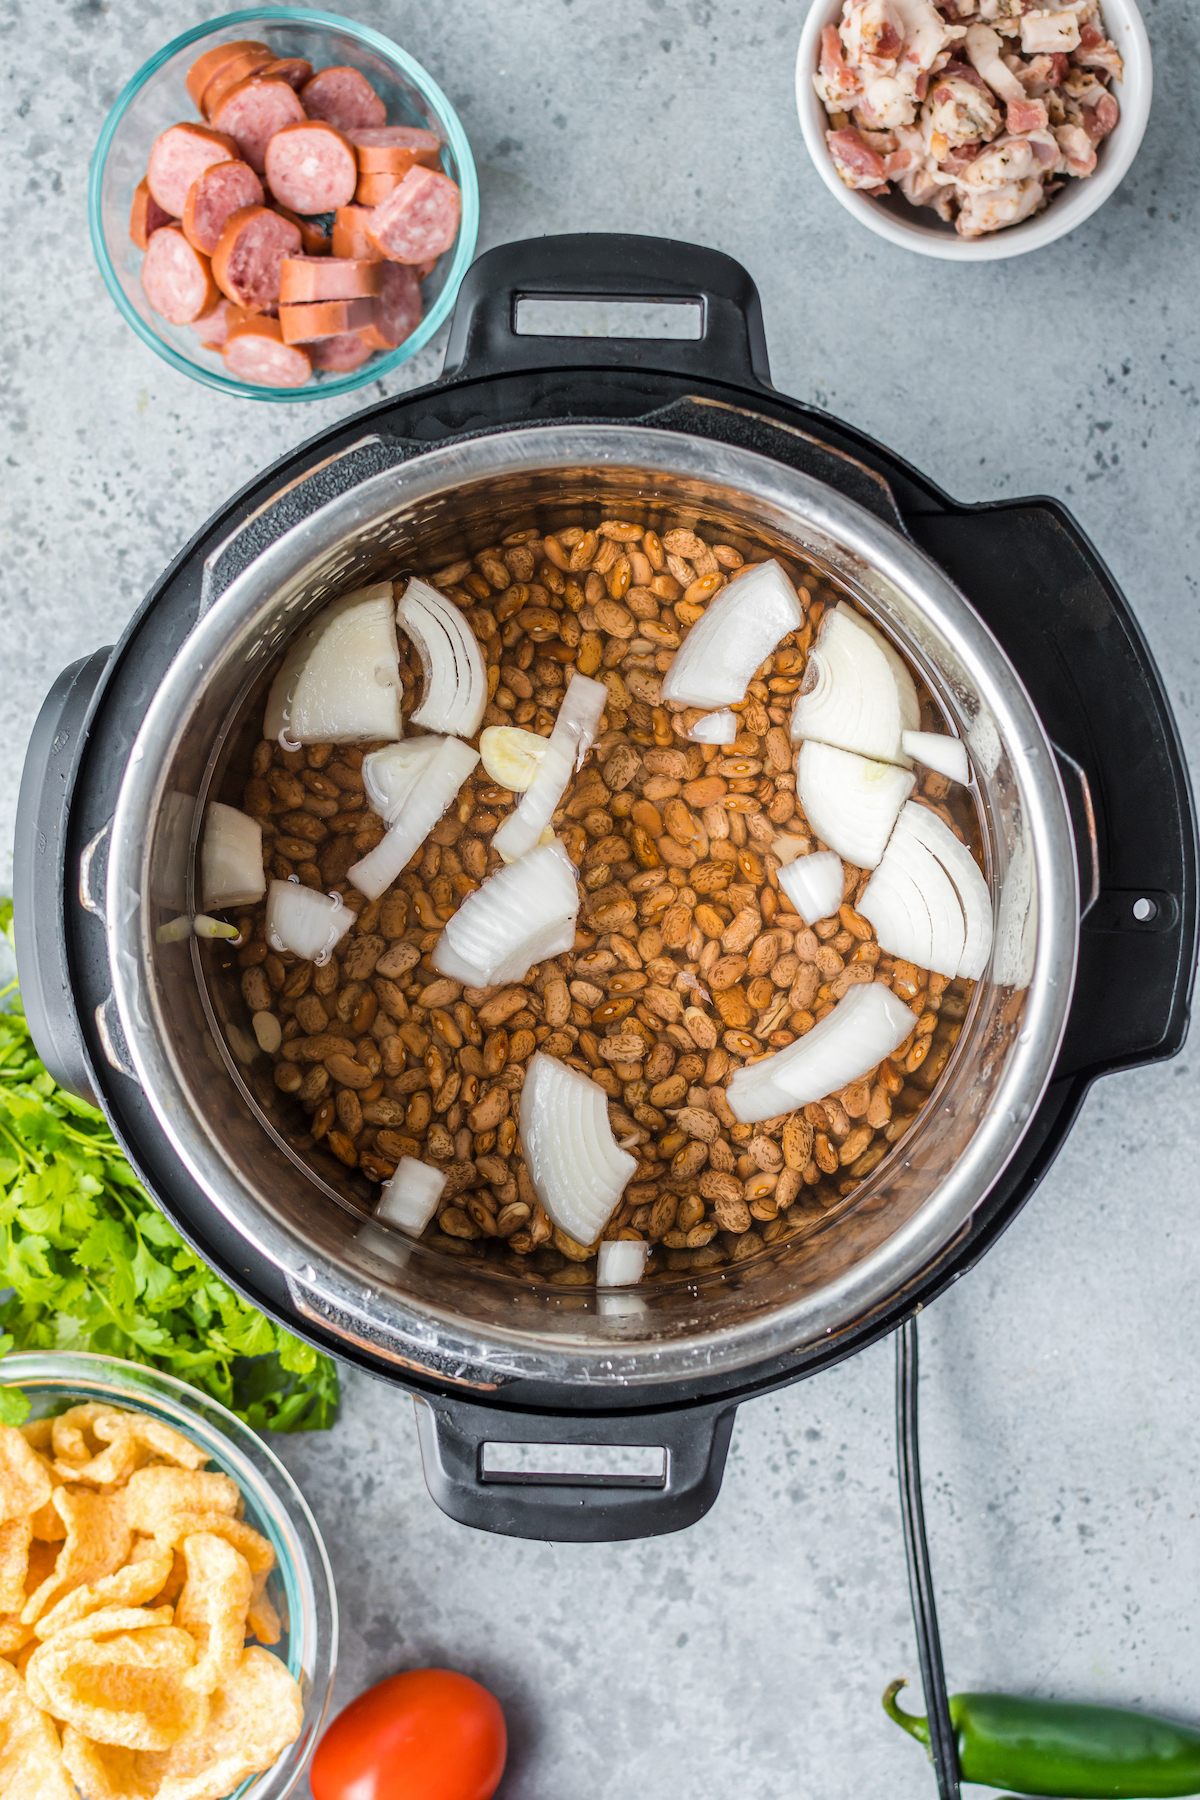 Pinto beans with sliced onion.